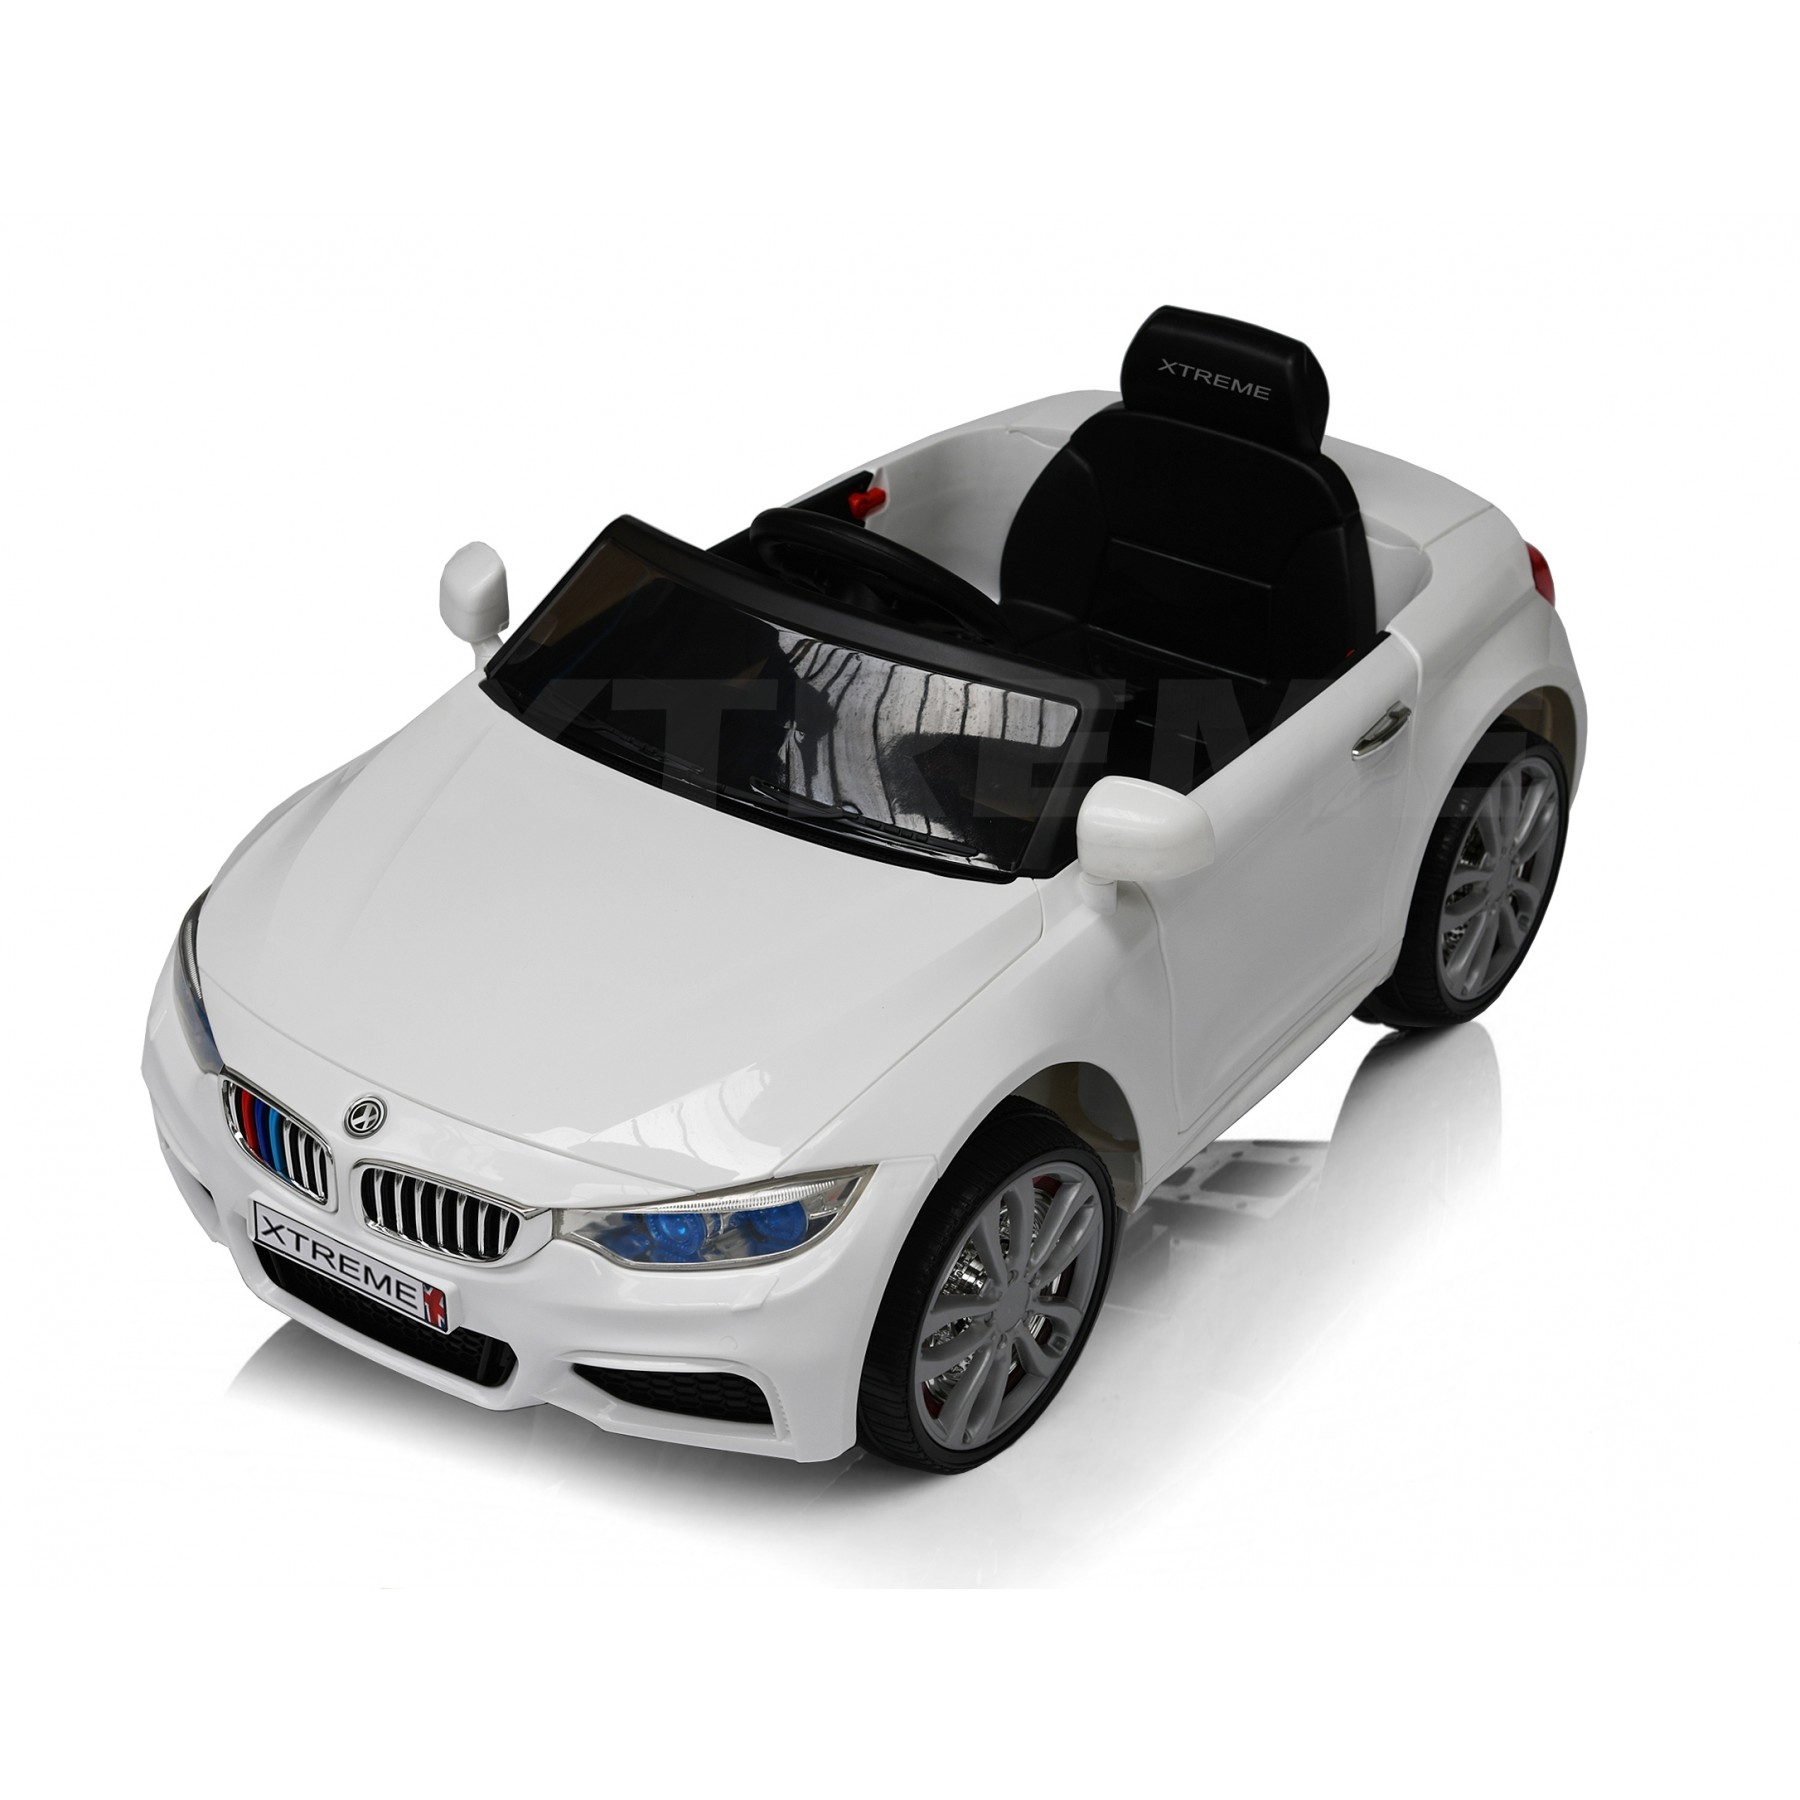 Xtreme 12v BMW 4 Series M4 Style Ride on Car in White